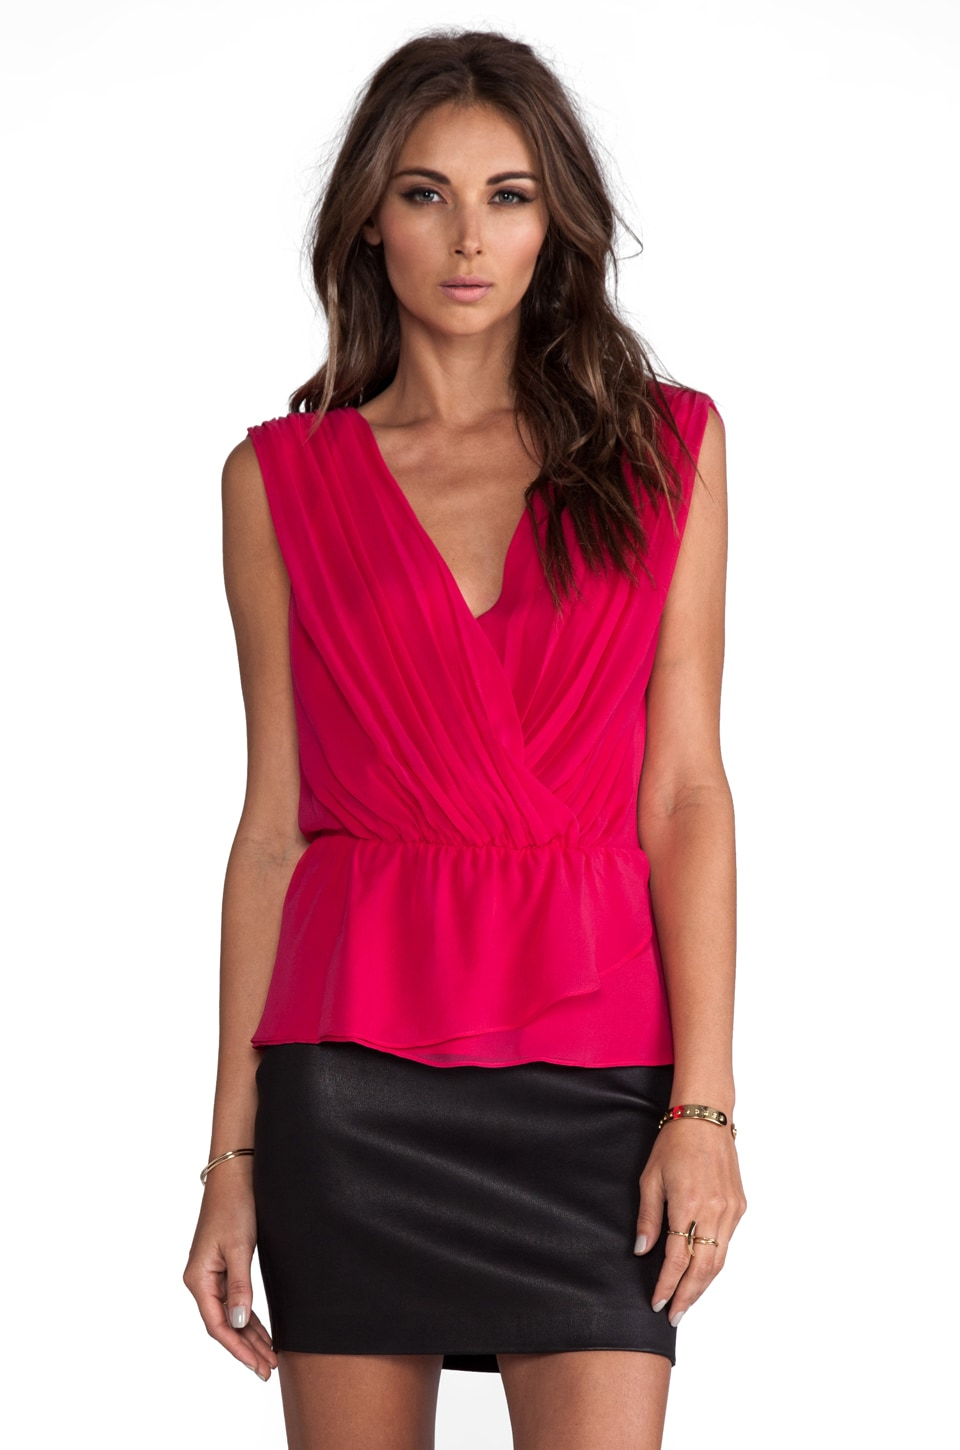 Alice + Olivia Abigayle Rouched Crossover Top in Berry Punch